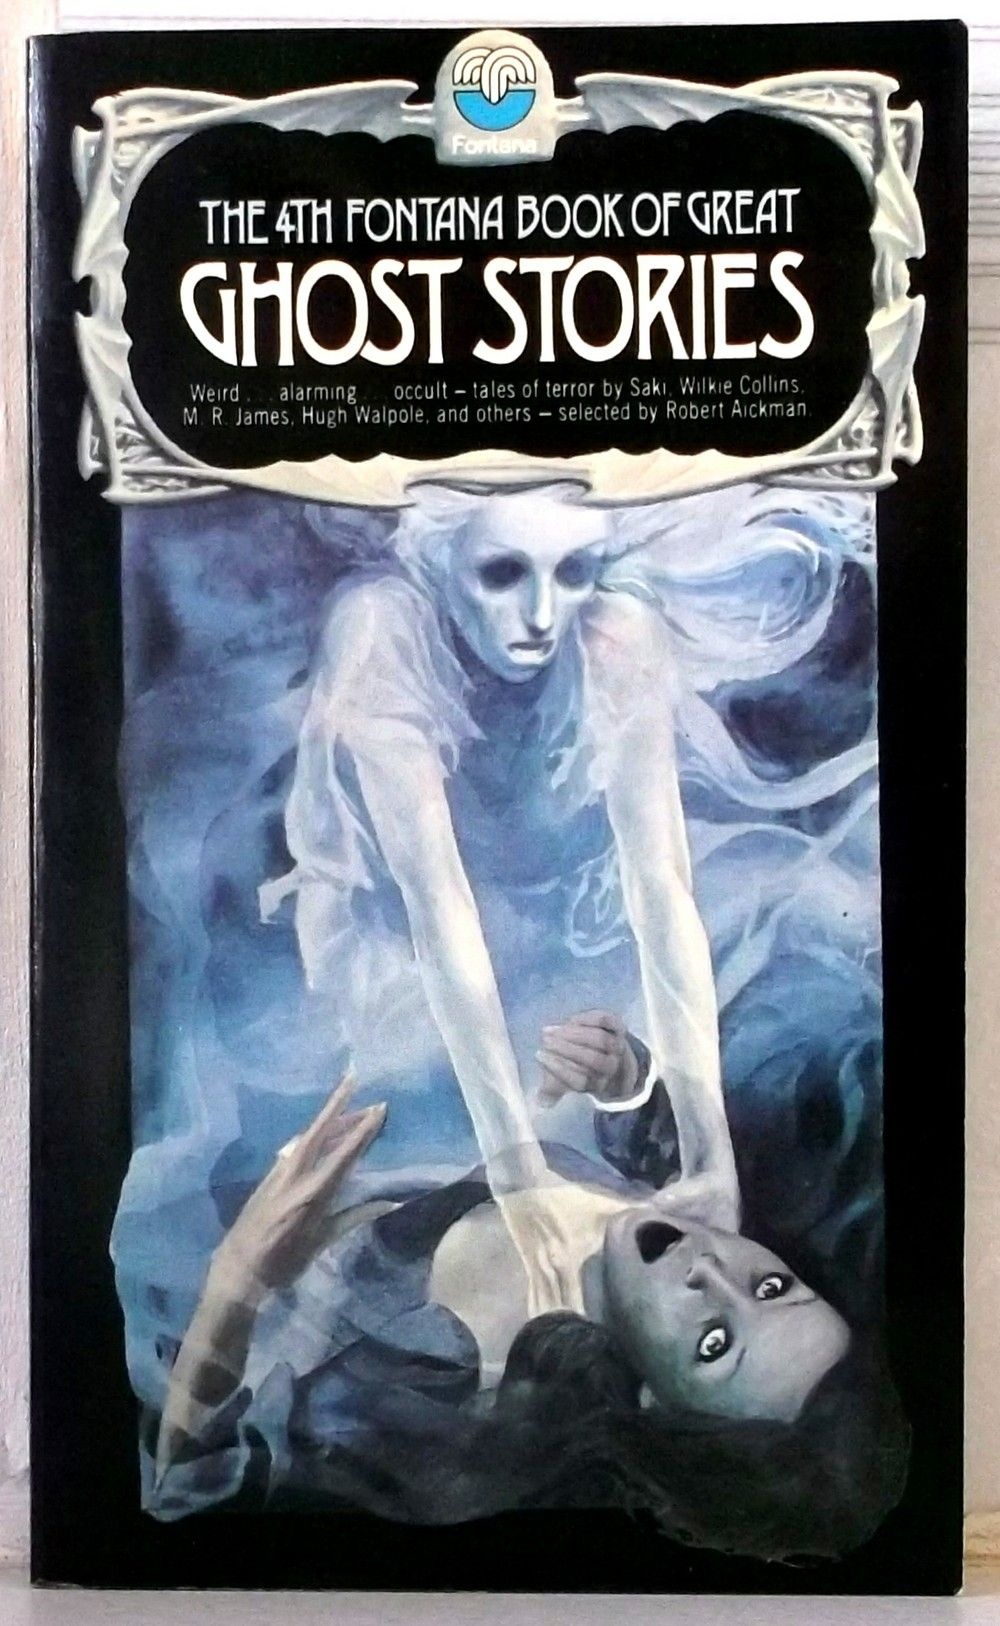 The 4th Fontana Book Of Great Ghost Stories P/B Used Book